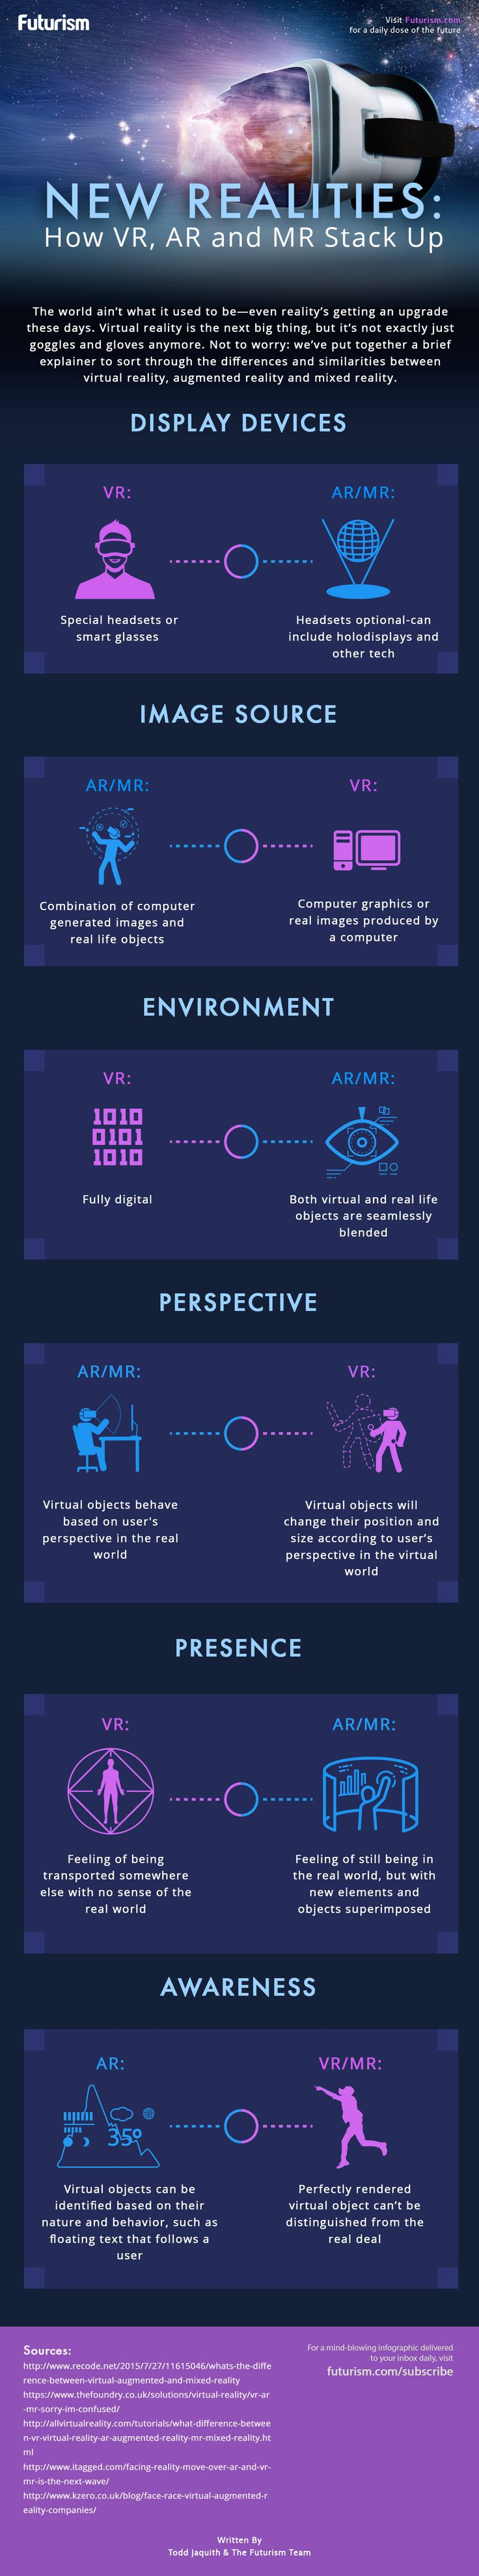 2016 has been a huge year for VR, AR, and MR. But what's the difference between them, and why does it matter?   http://futurism.com/images/vr-ar-and-mr-whats-the-difference-infographic-2/?utm_campaign=coschedule&utm_source=pinterest&utm_medium=Futurism&utm_content=VR%2C%20AR%2C%20And%20MR%3A%20What%27s%20The%20Difference%3F%20%5BINFOGRAPHIC%5D